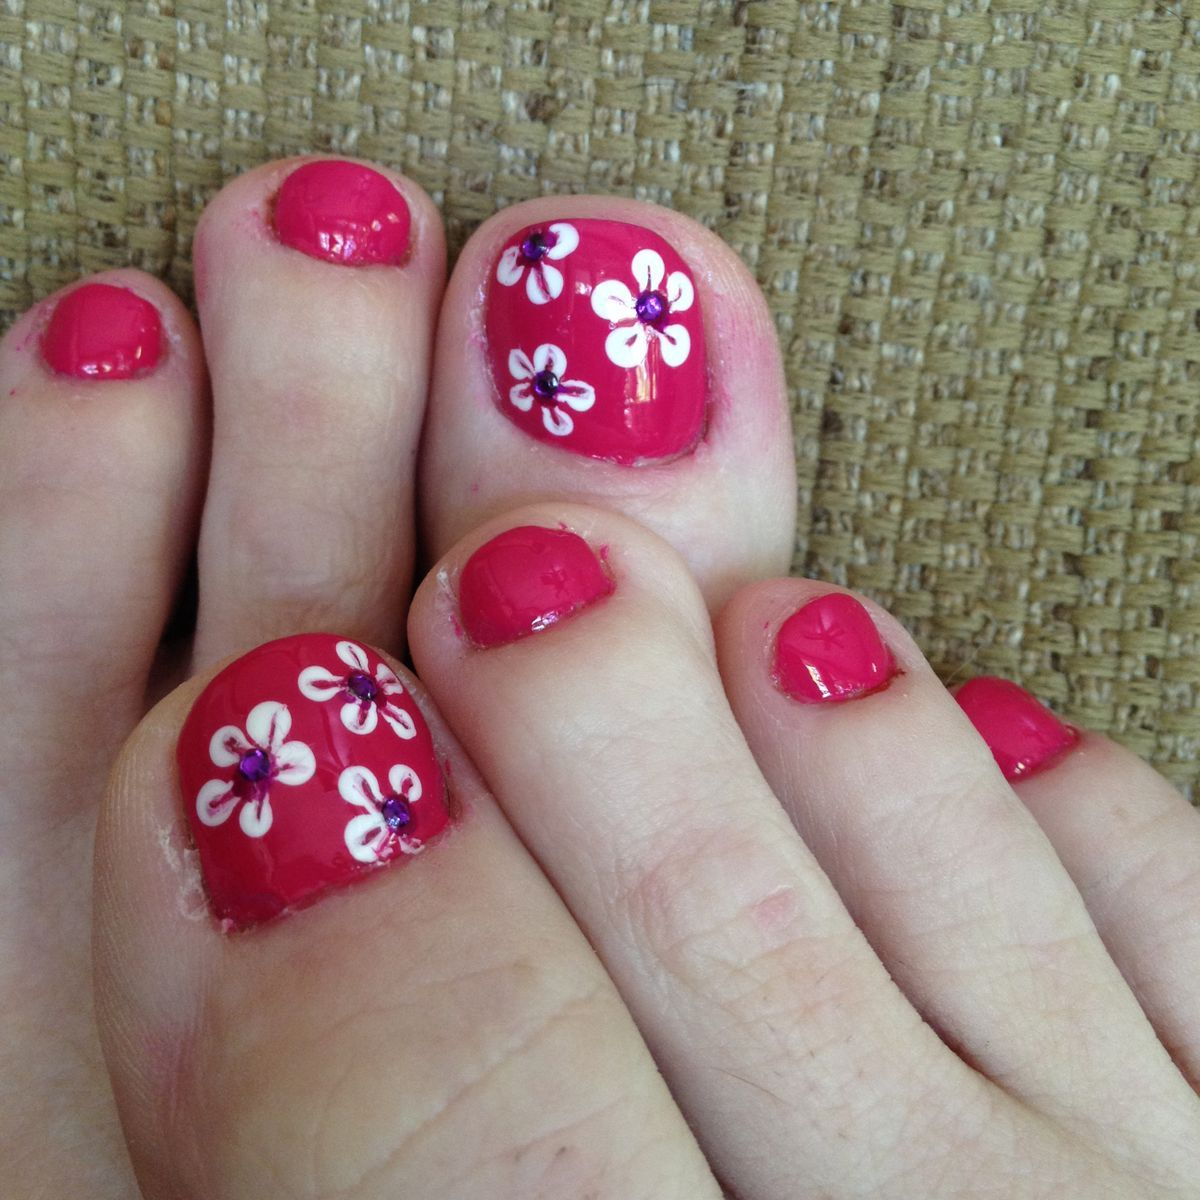 I always love to get a flower on my toes🌸 - Pin By Roberta Carlson On Nail Art In 2018 Pinterest Pedicures